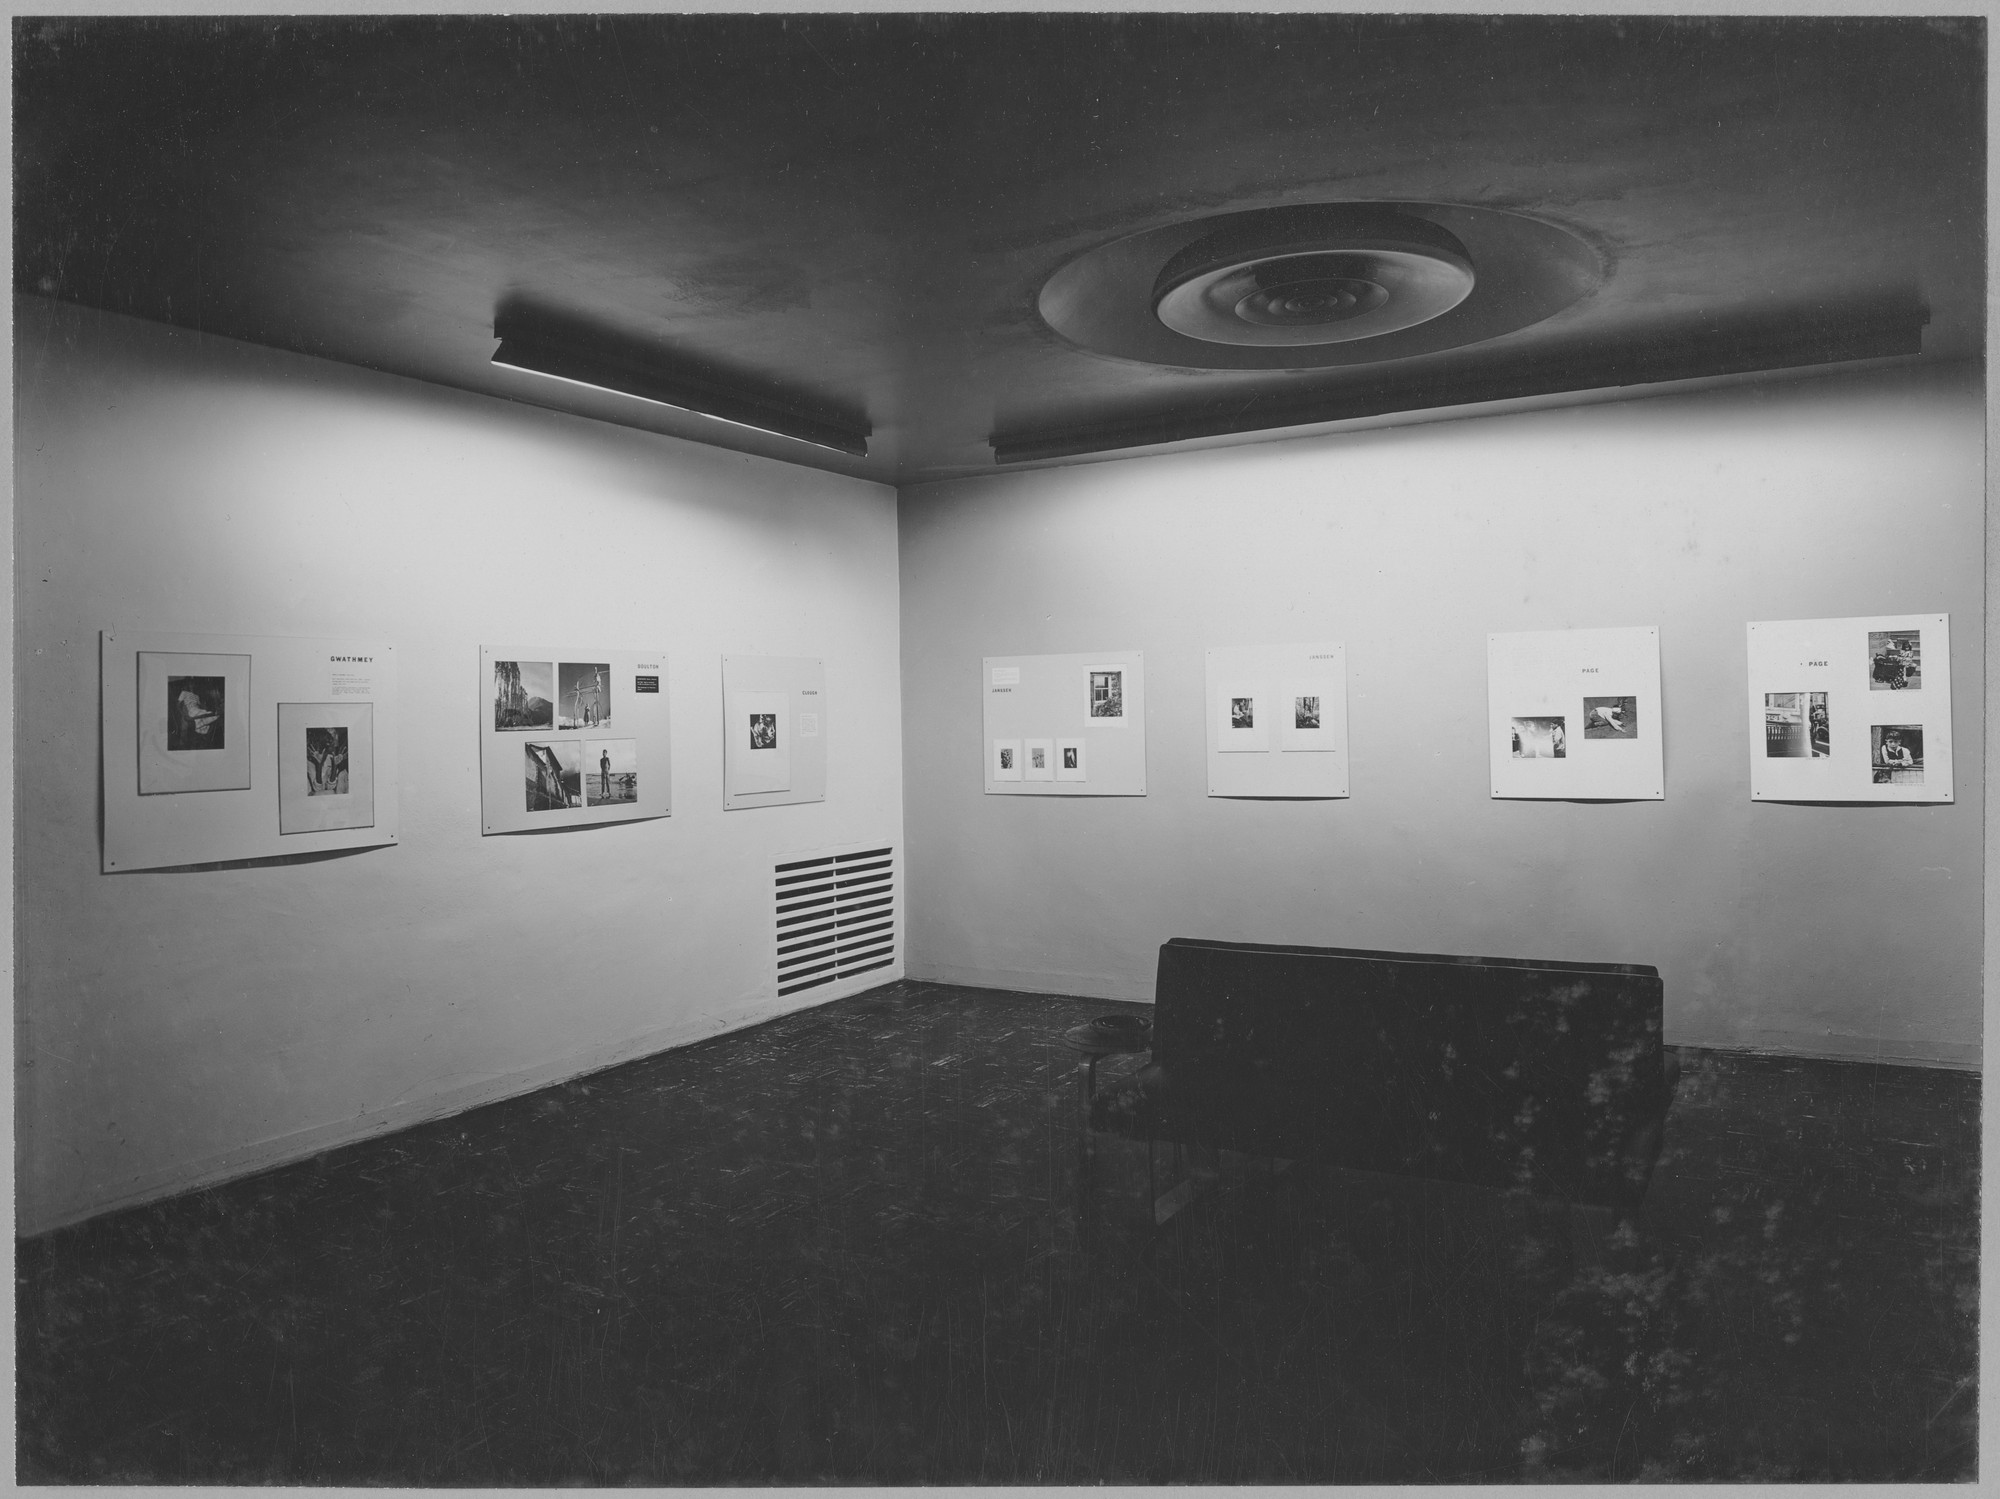 "Installation view of the exhibition, ""New Photographers."" June 18, 1946–September 15, 1946. Photographic Archive. The Museum of Modern Art Archives, New York. IN322.1. Photograph by Soichi Sunami."